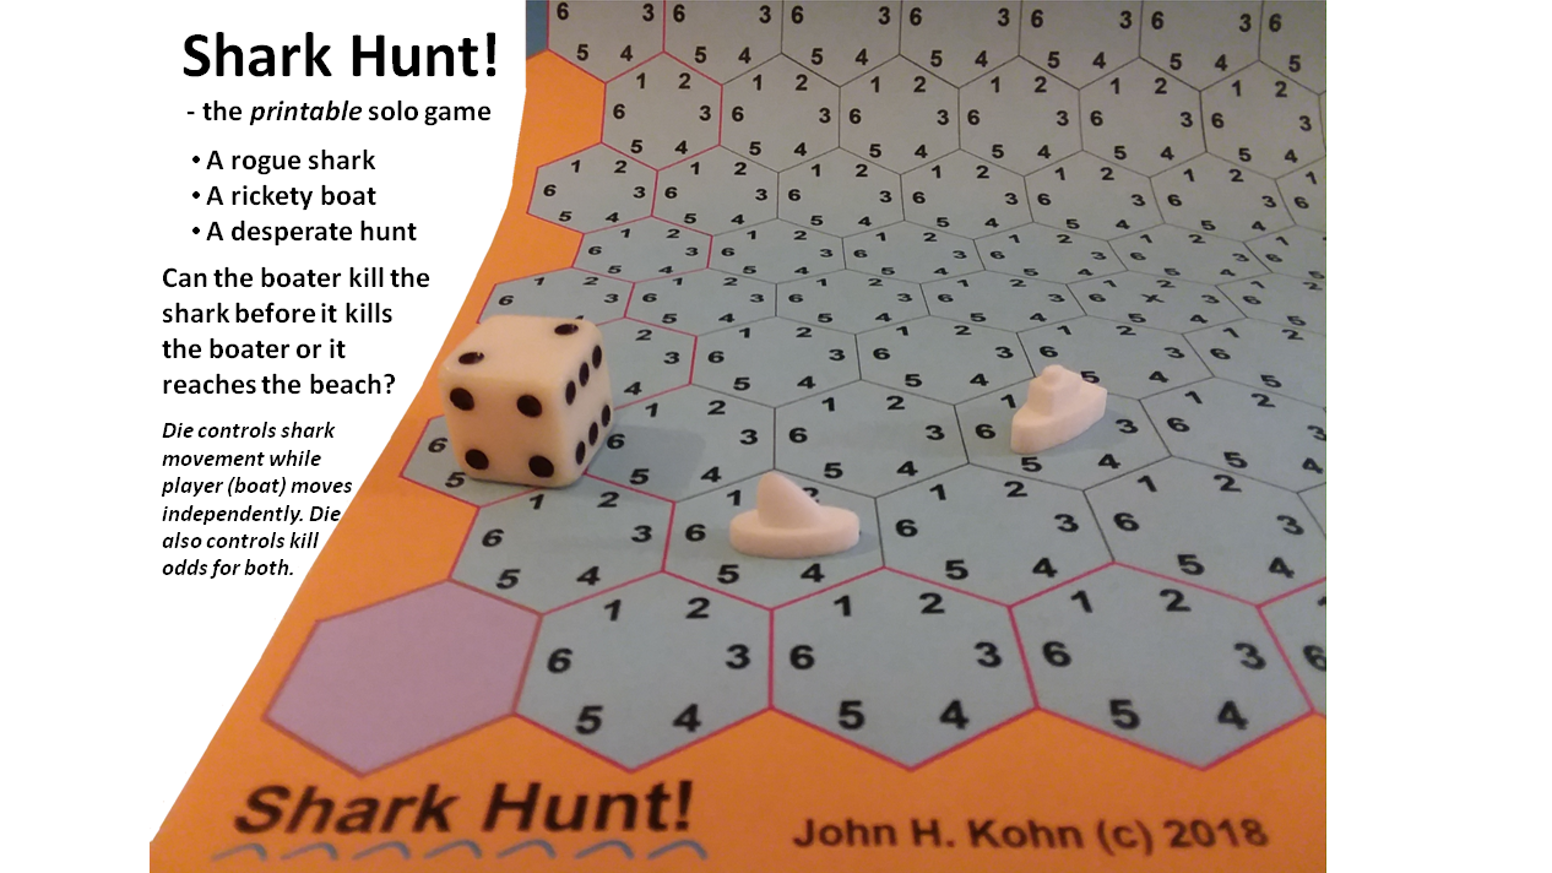 Shark Hunt! - a printable prototype solo game by John H